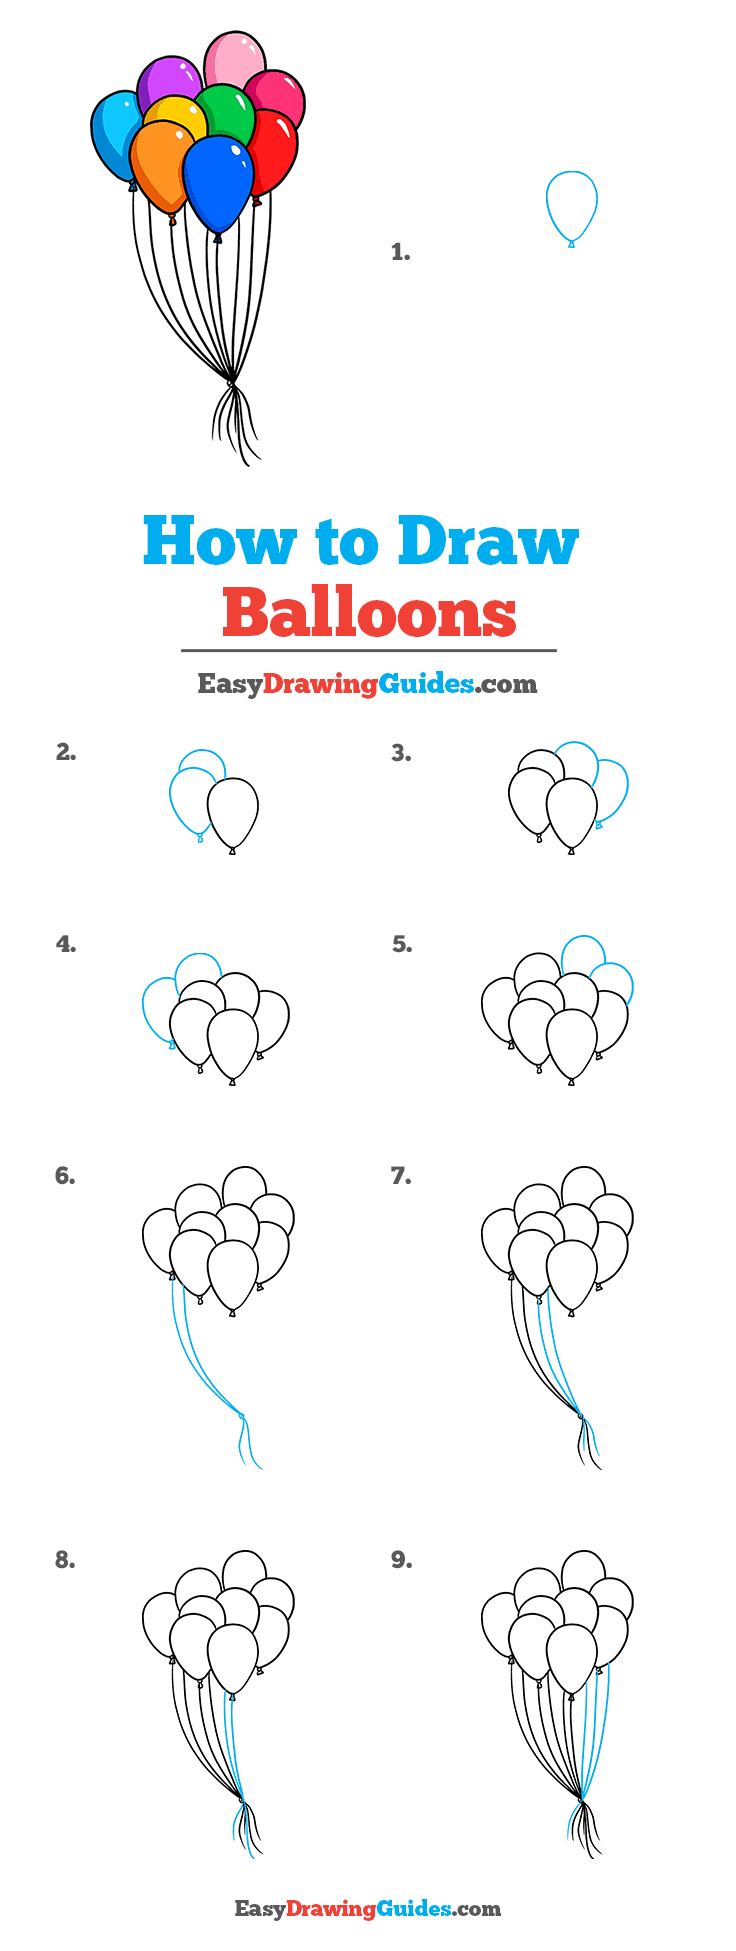 How to Draw Balloons Step by Step Tutorial Image